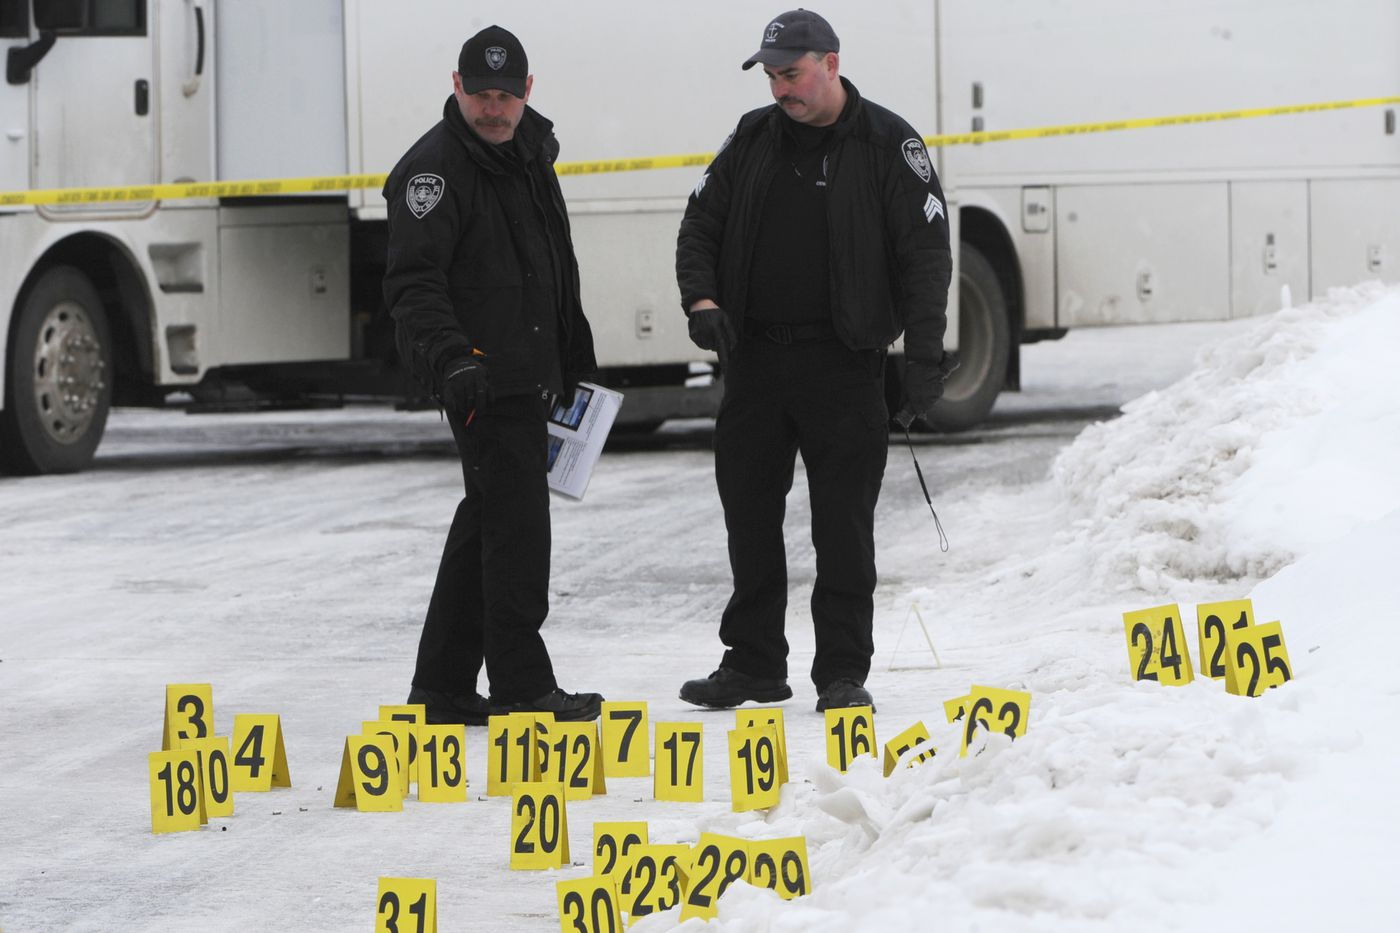 Anchorage police investigate the scene after Dylan Aikey was shot and killed in Airport Heights on Thursday, March 7, 2019. (Bill Roth / ADN)